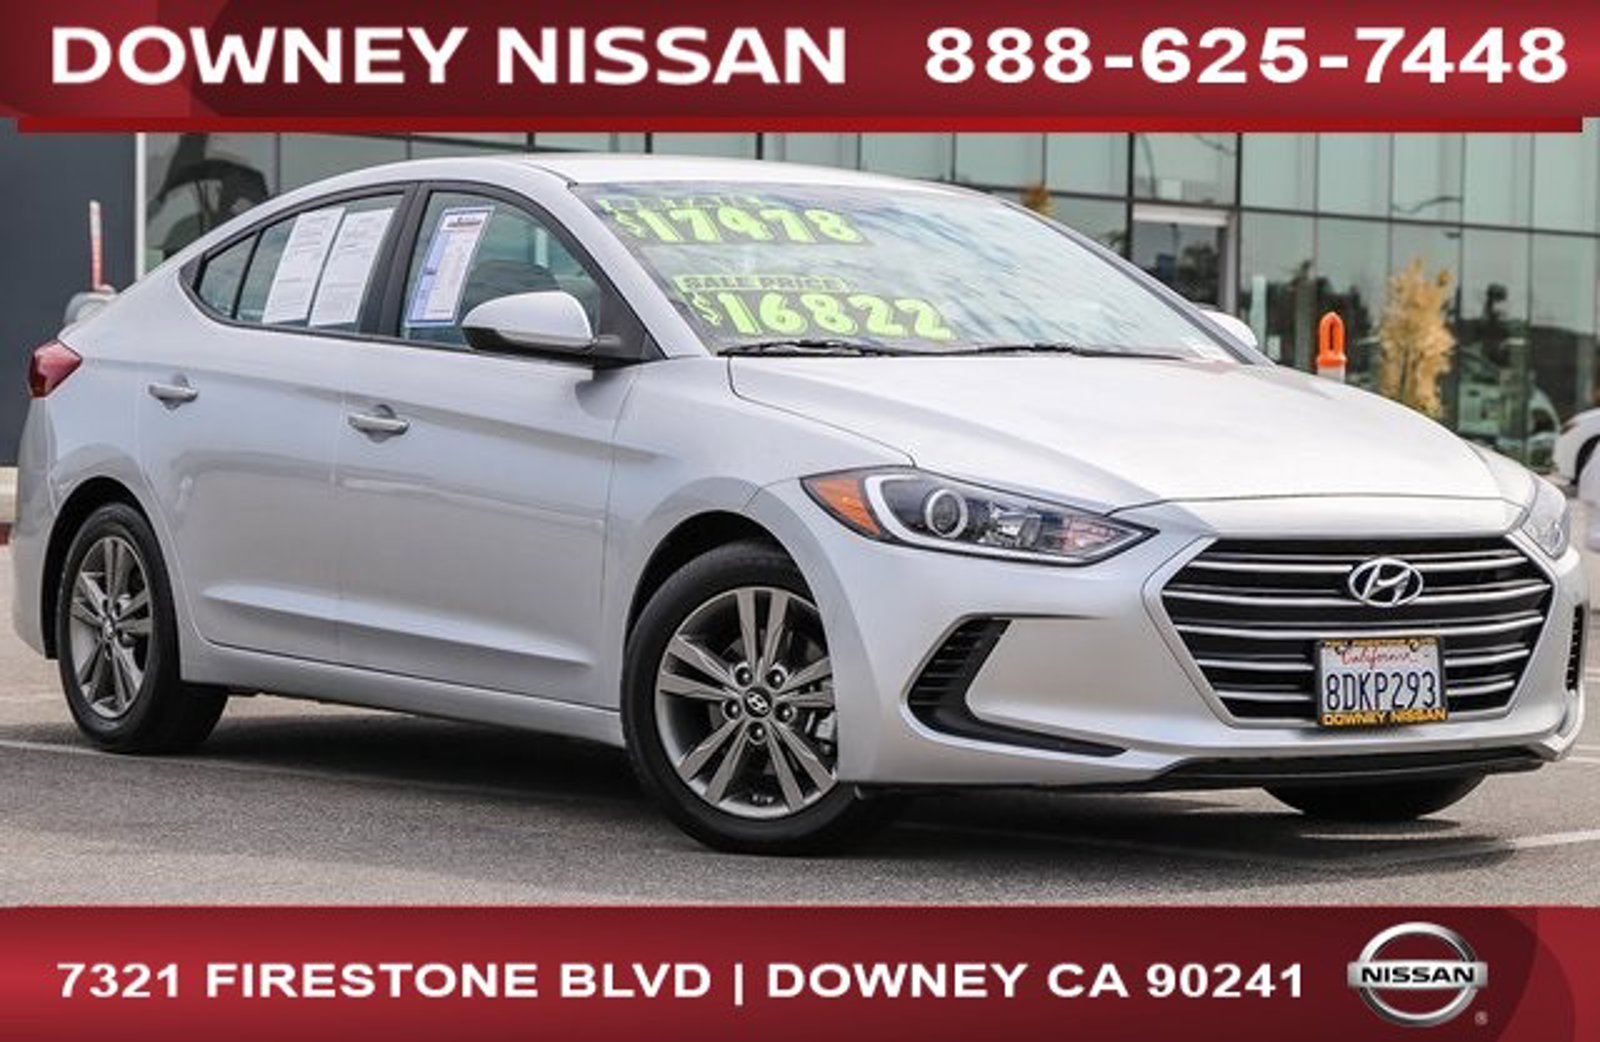 2018 Hyundai Elantra SEL SEL 2.0L Auto (Alabama) Regular Unleaded I-4 2.0 L/122 [1]